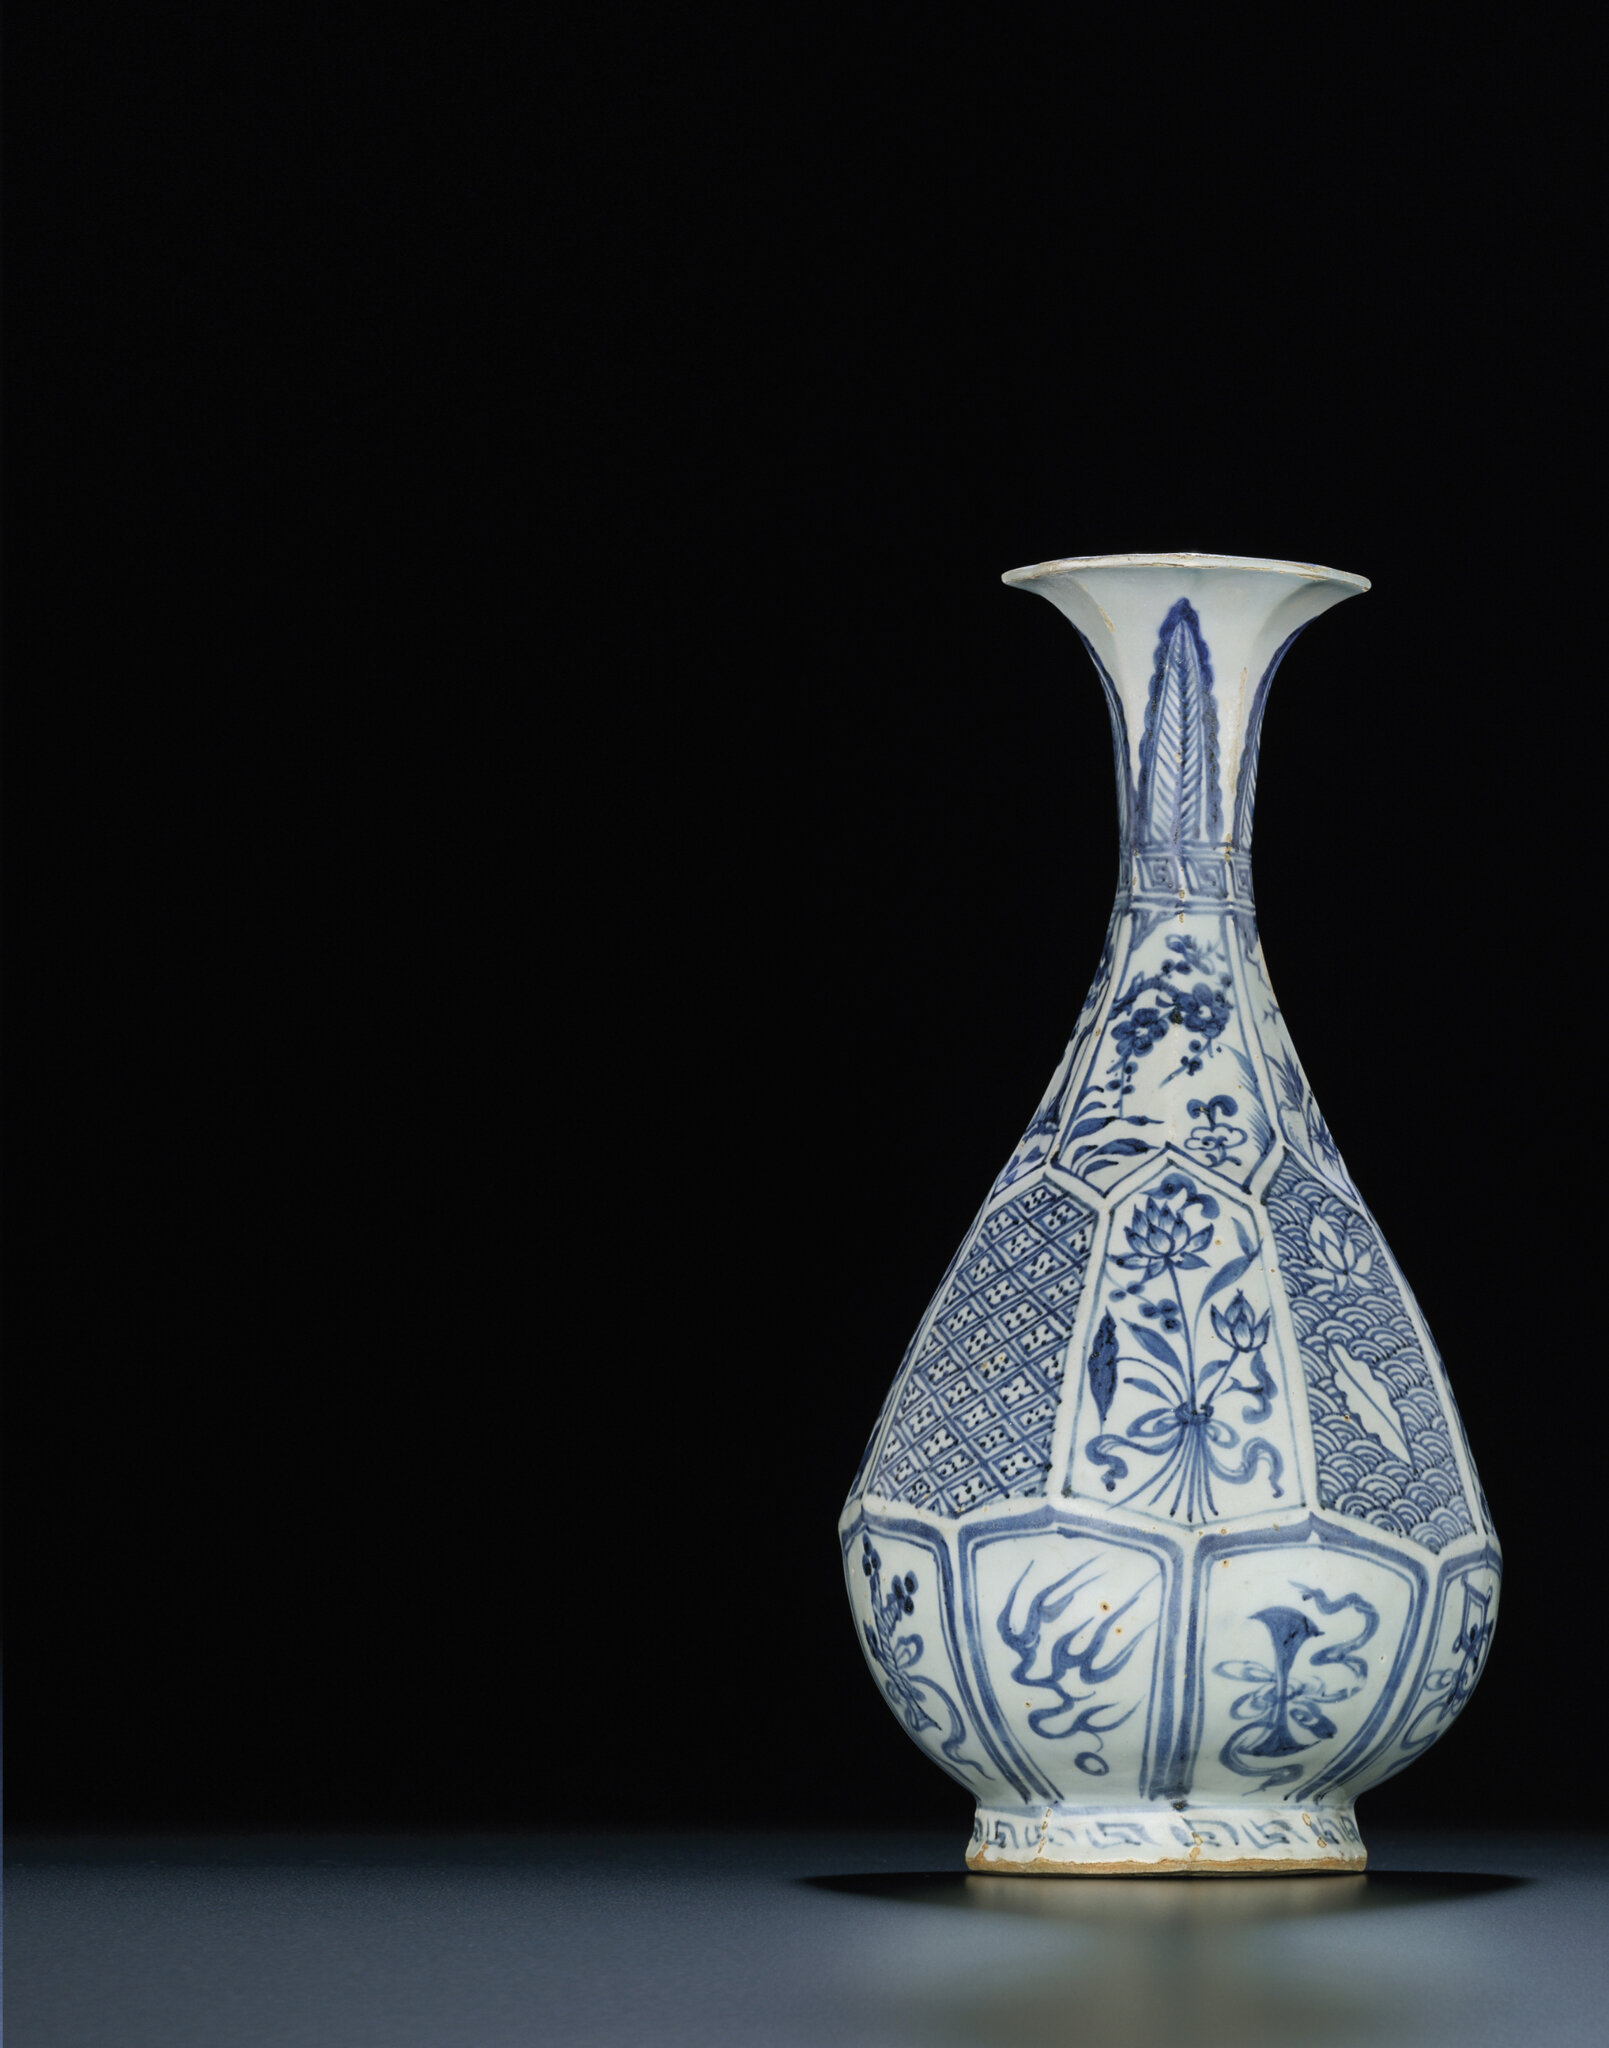 A very rare blue and white octagonal pear-shaped vase,yuhuchunping, Yuan dynasty (1279-1368)